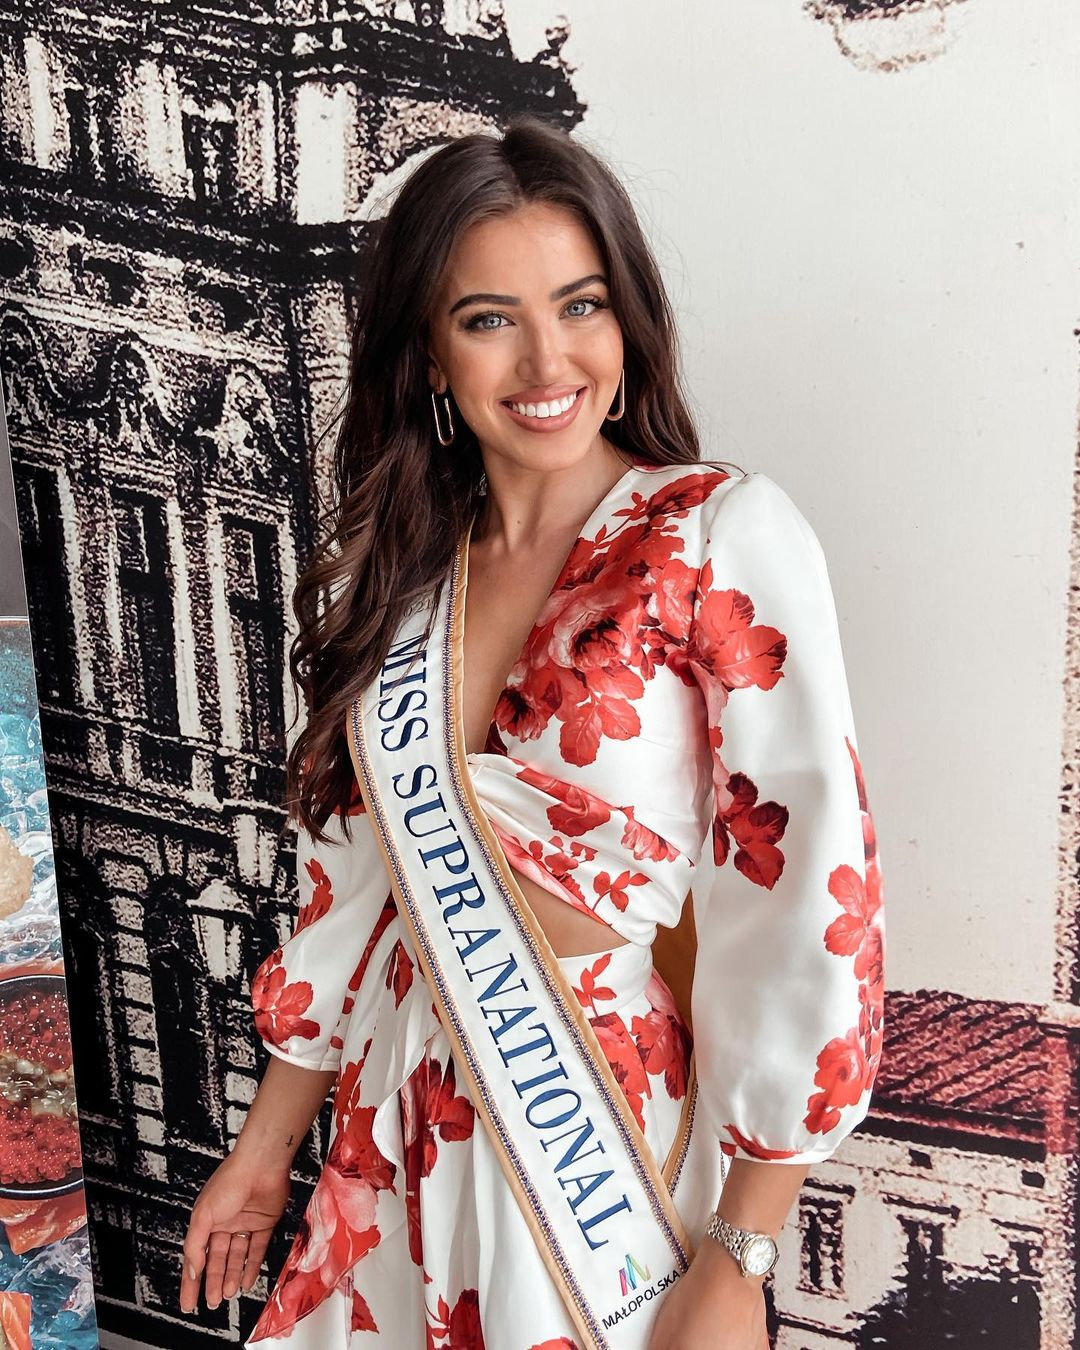 chanique rabe, miss supranational 2021. 23223519